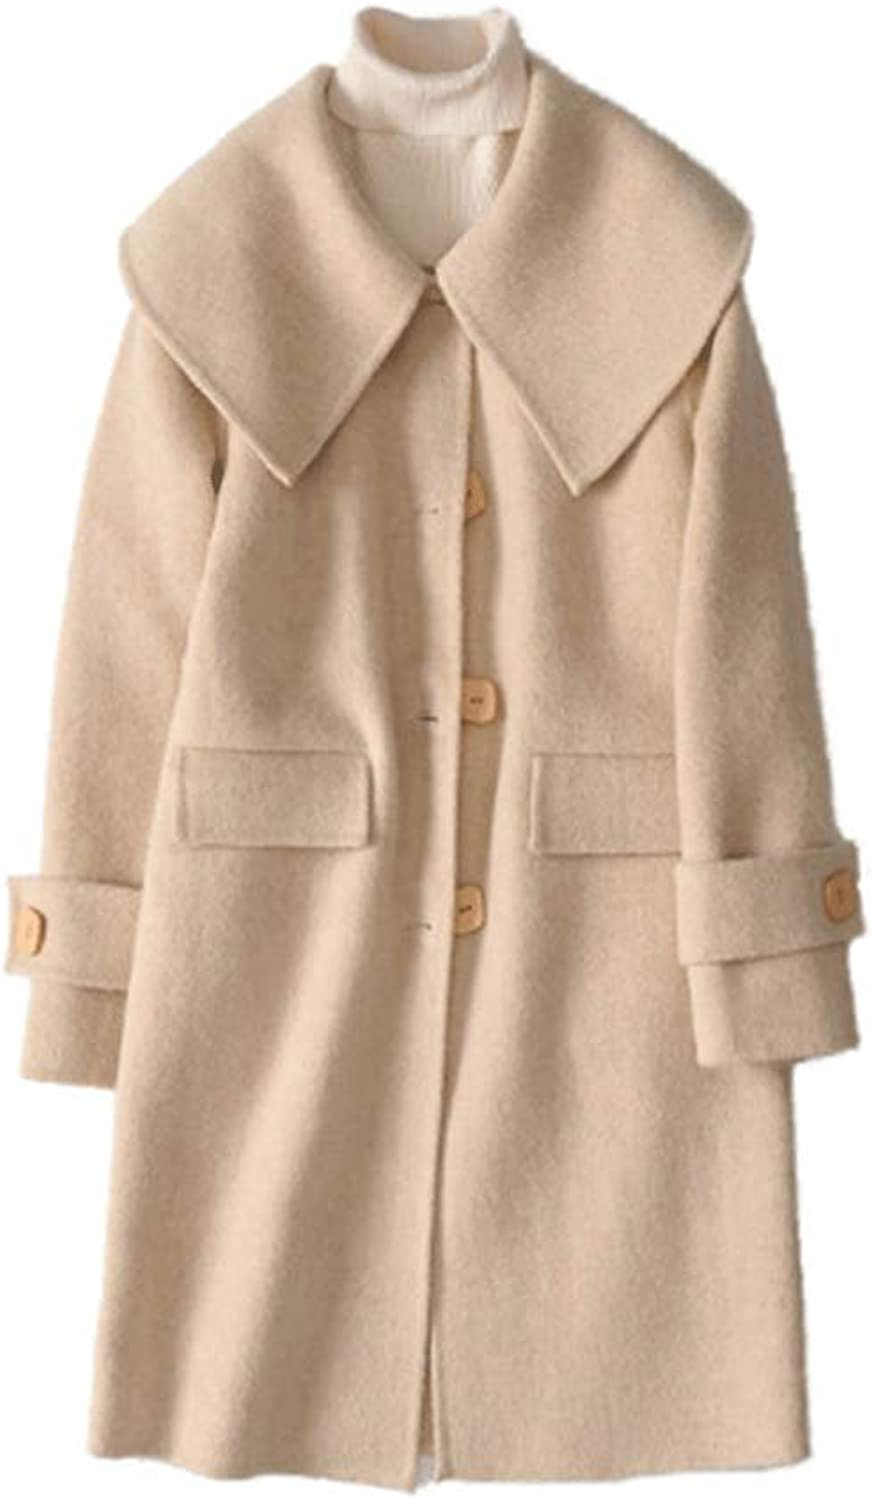 CG Women's Classic Wool Blend Peacoat Winter Outdoor Single Breasted Jacket 01688